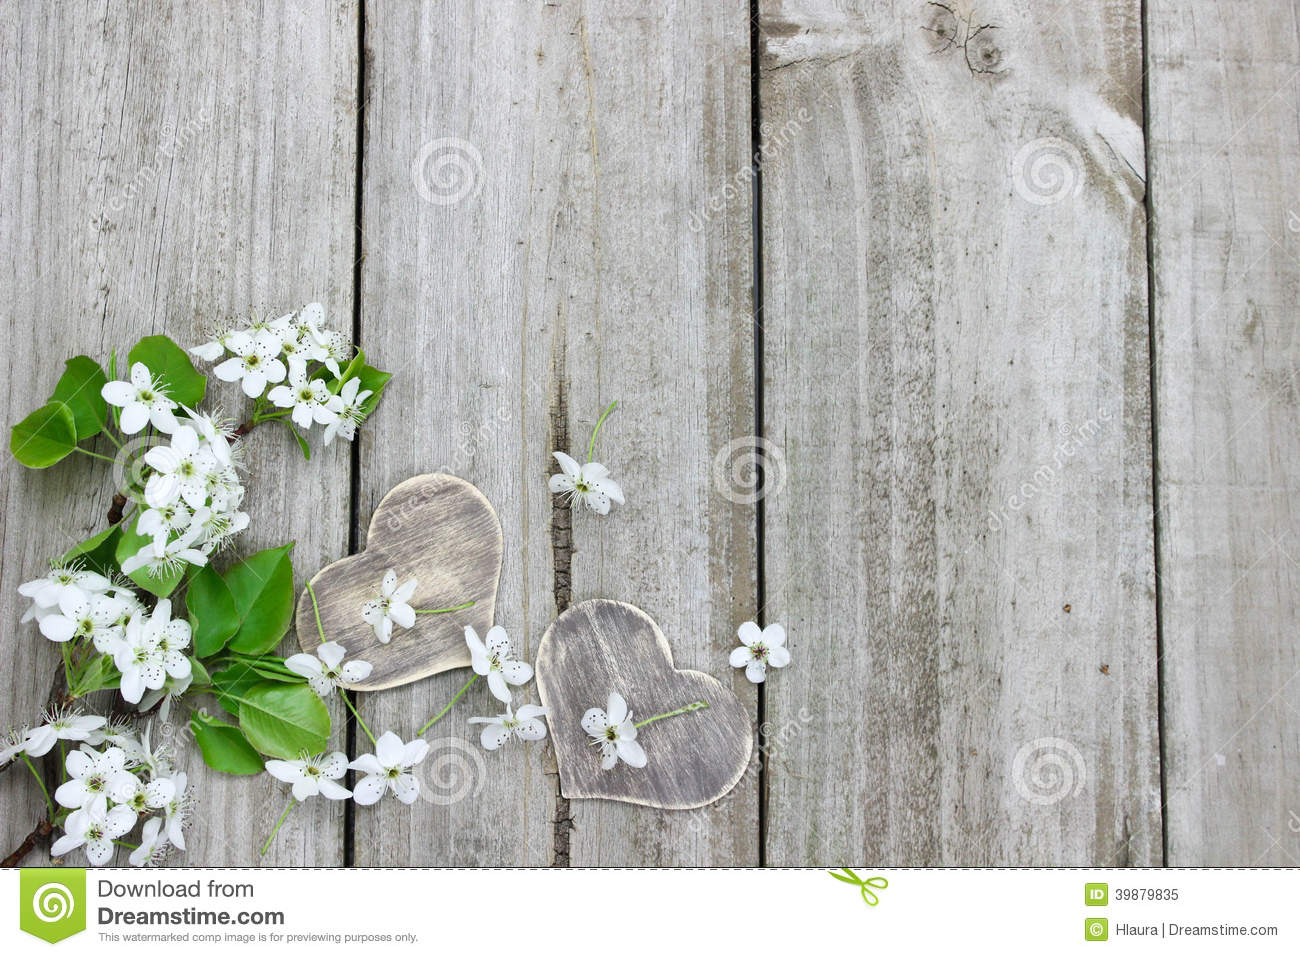 Garden gate plans - Spring Tree Blossoms And Wood Hearts Border Wooden Fence